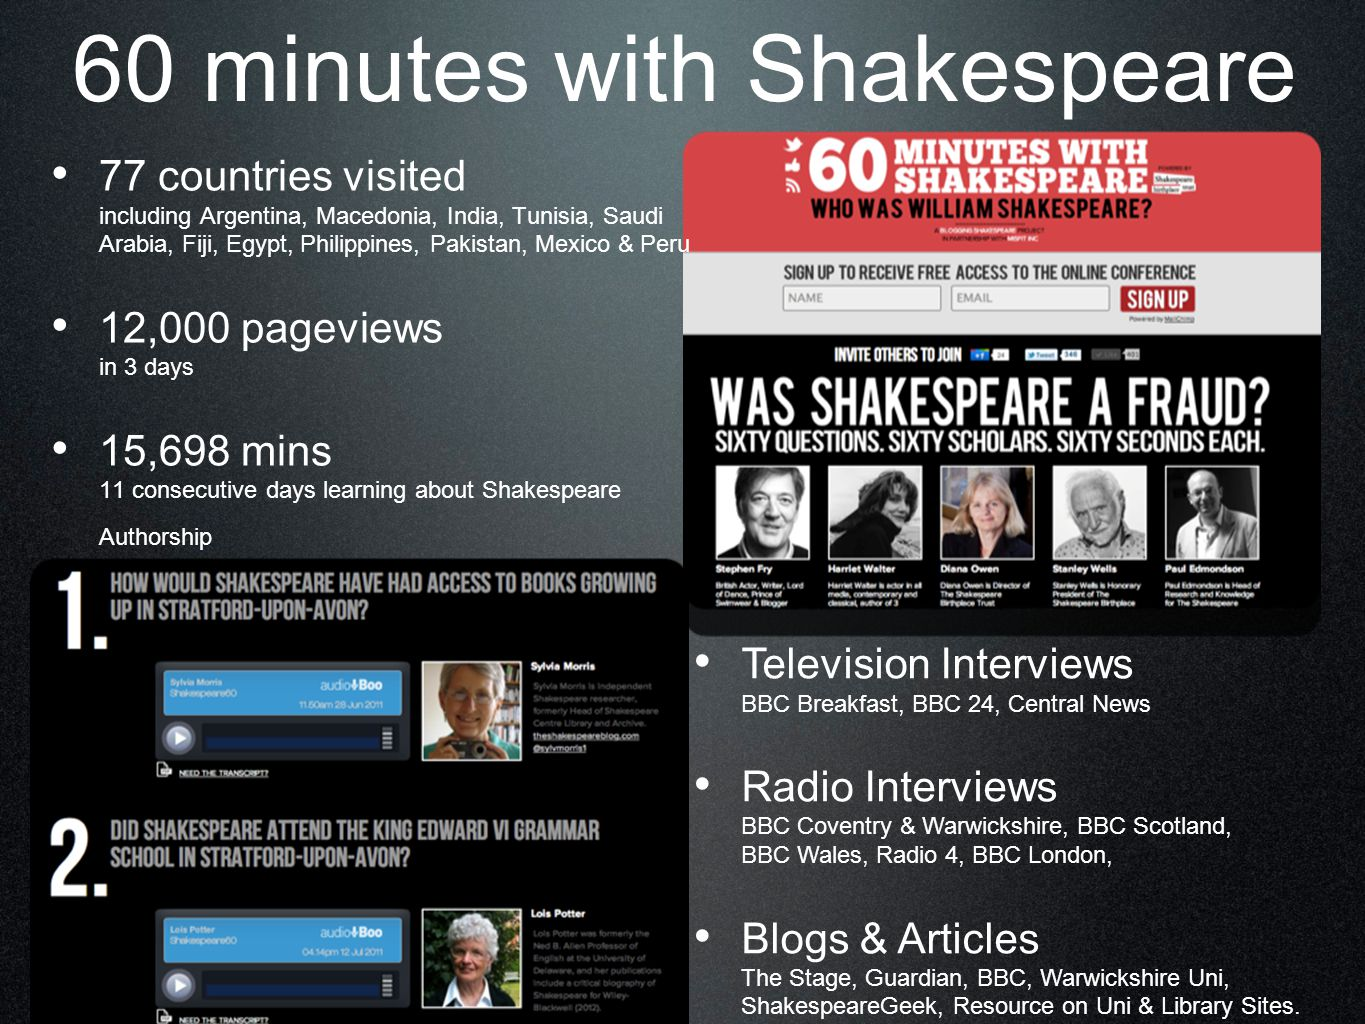 60 minutes with Shakespeare 77 countries visited including Argentina, Macedonia, India, Tunisia, Saudi Arabia, Fiji, Egypt, Philippines, Pakistan, Mexico & Peru 12,000 pageviews in 3 days 15,698 mins 11 consecutive days learning about Shakespeare Authorship Television Interviews BBC Breakfast, BBC 24, Central News Radio Interviews BBC Coventry & Warwickshire, BBC Scotland, BBC Wales, Radio 4, BBC London, Blogs & Articles The Stage, Guardian, BBC, Warwickshire Uni, ShakespeareGeek, Resource on Uni & Library Sites.